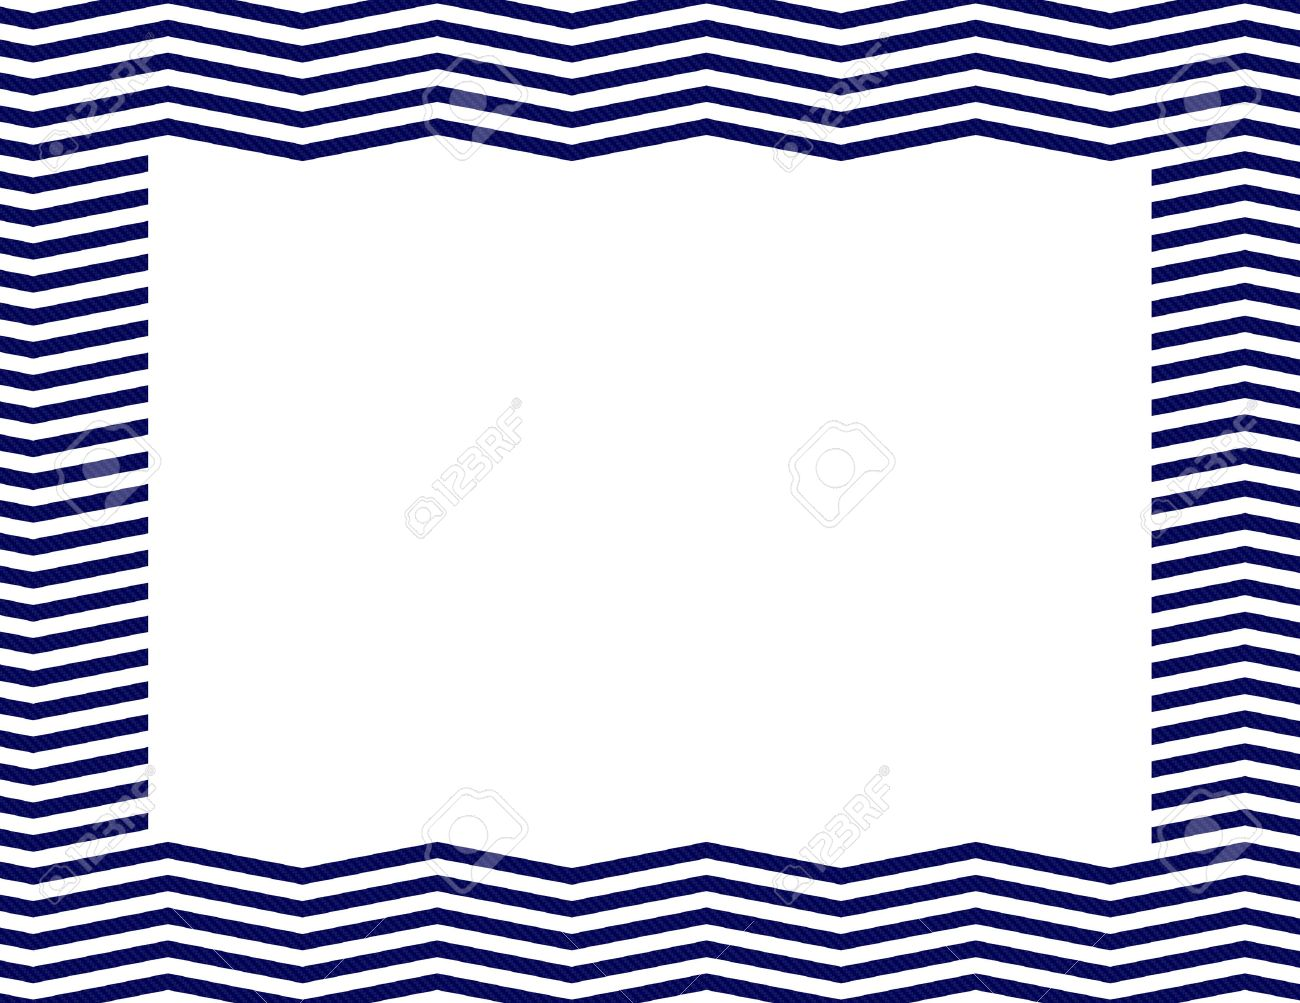 Blue and white chevron pattern background.